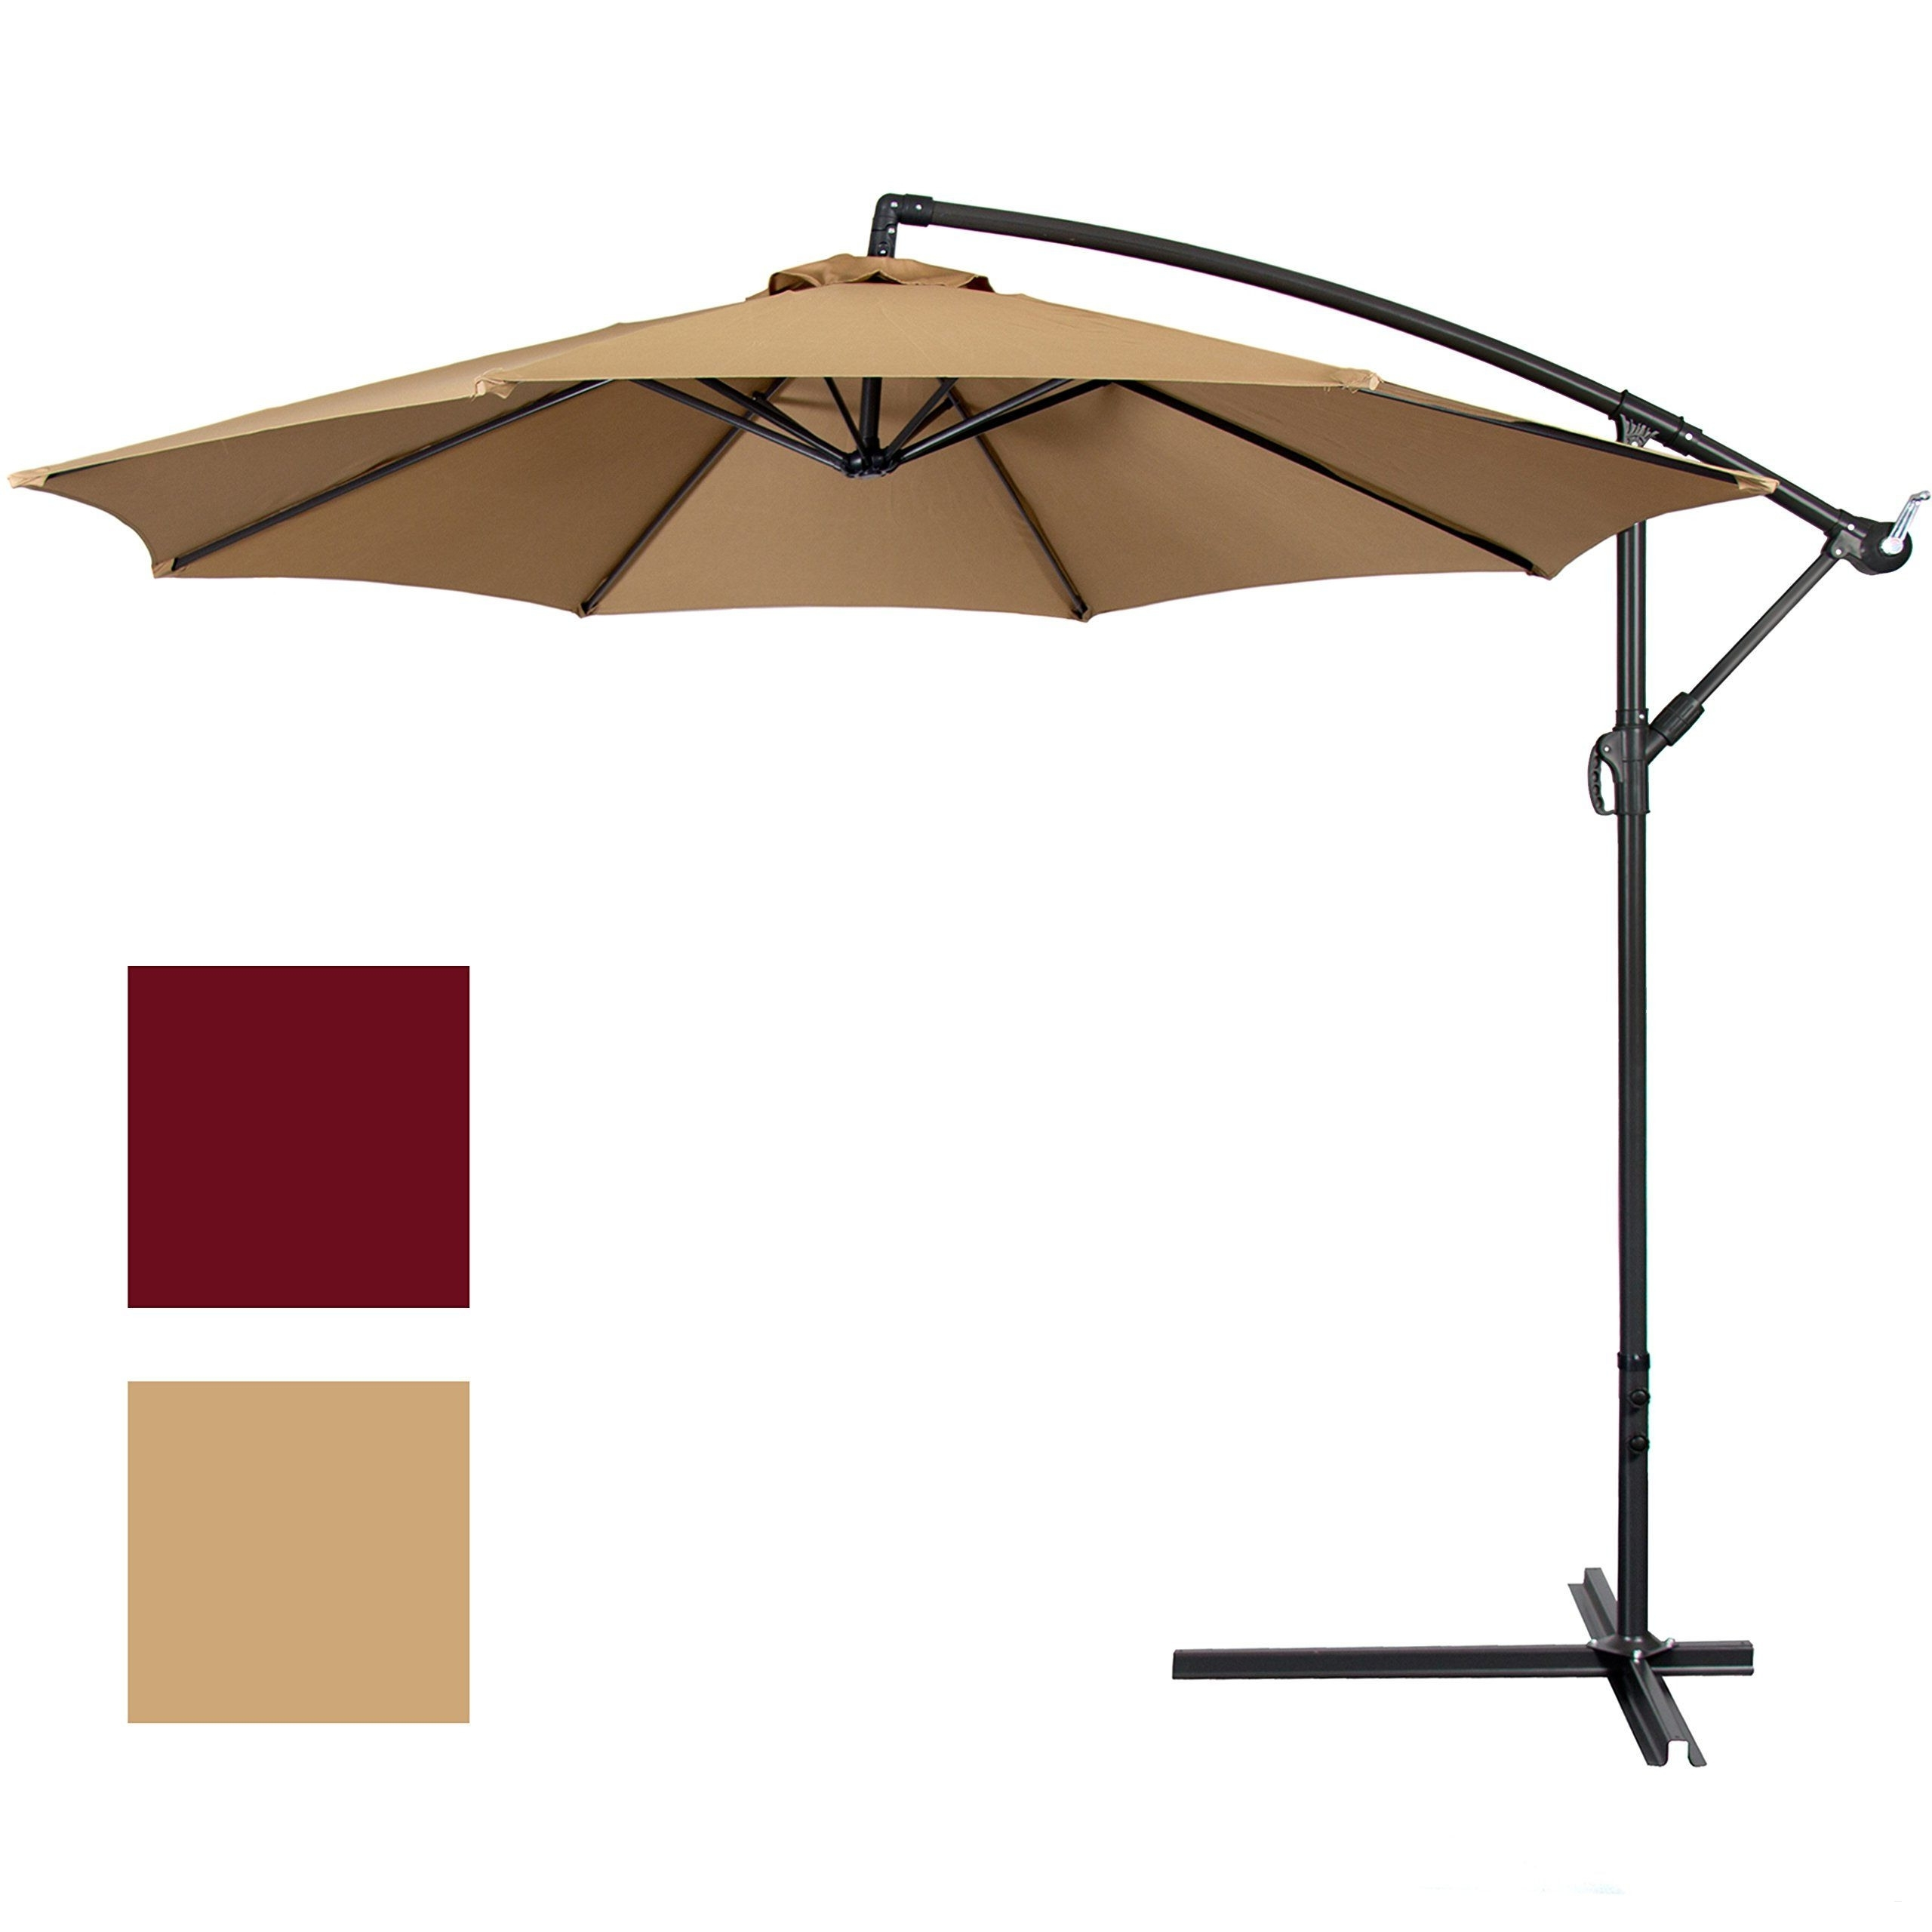 Preferred Offset Patio Umbrellas – Fabulous Best Choice Products Fset 10 In Hanging Patio Umbrellas (View 7 of 20)